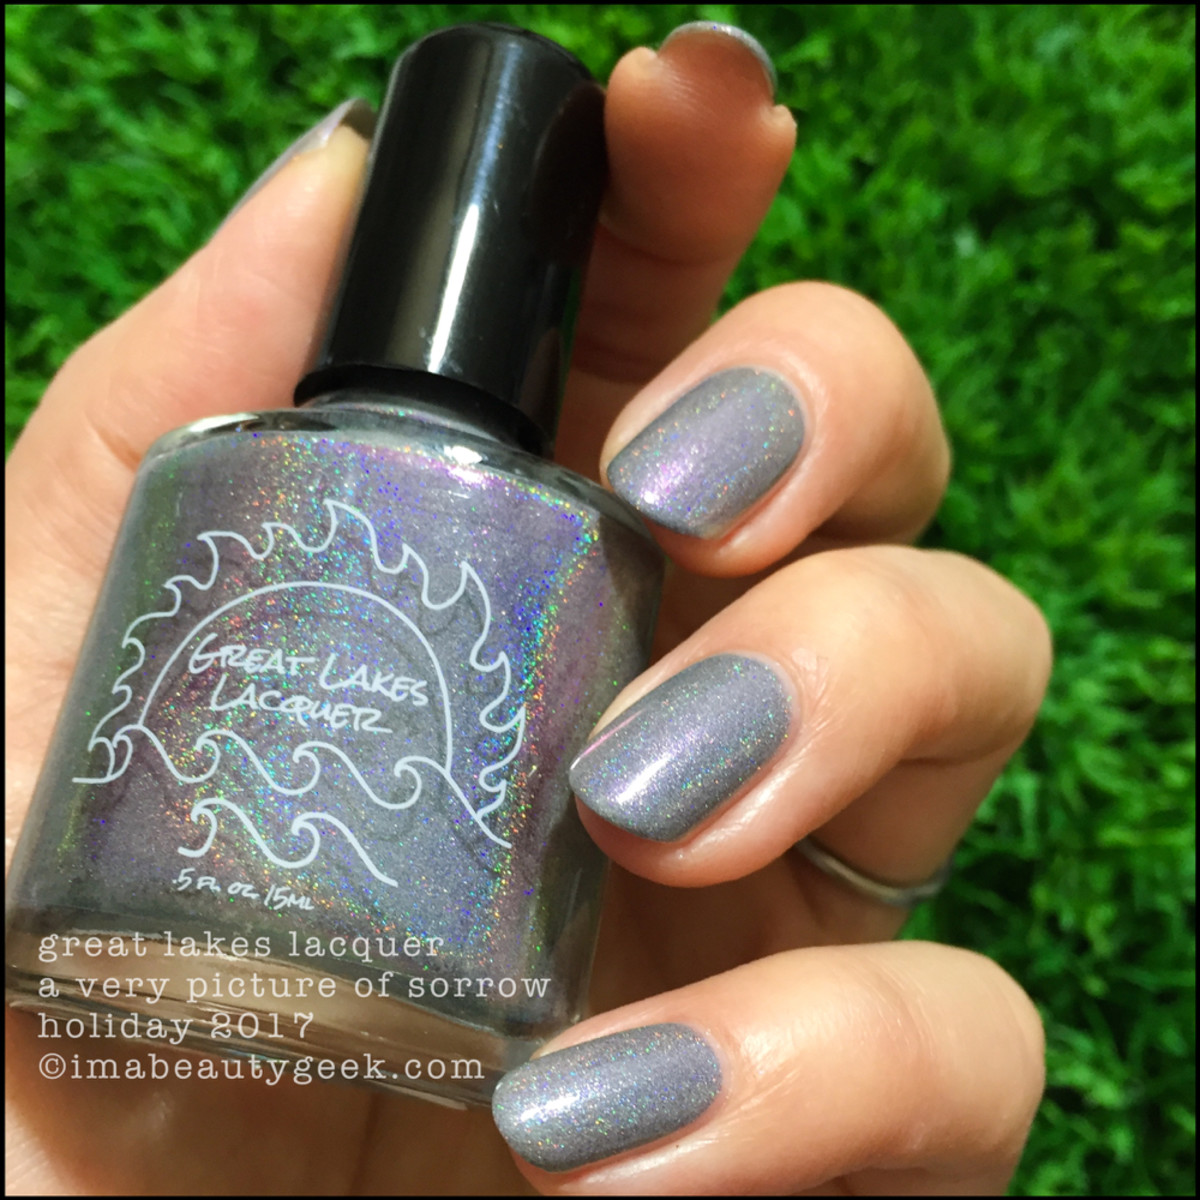 Great Lakes Lacquer A Very Picture of Sorrow